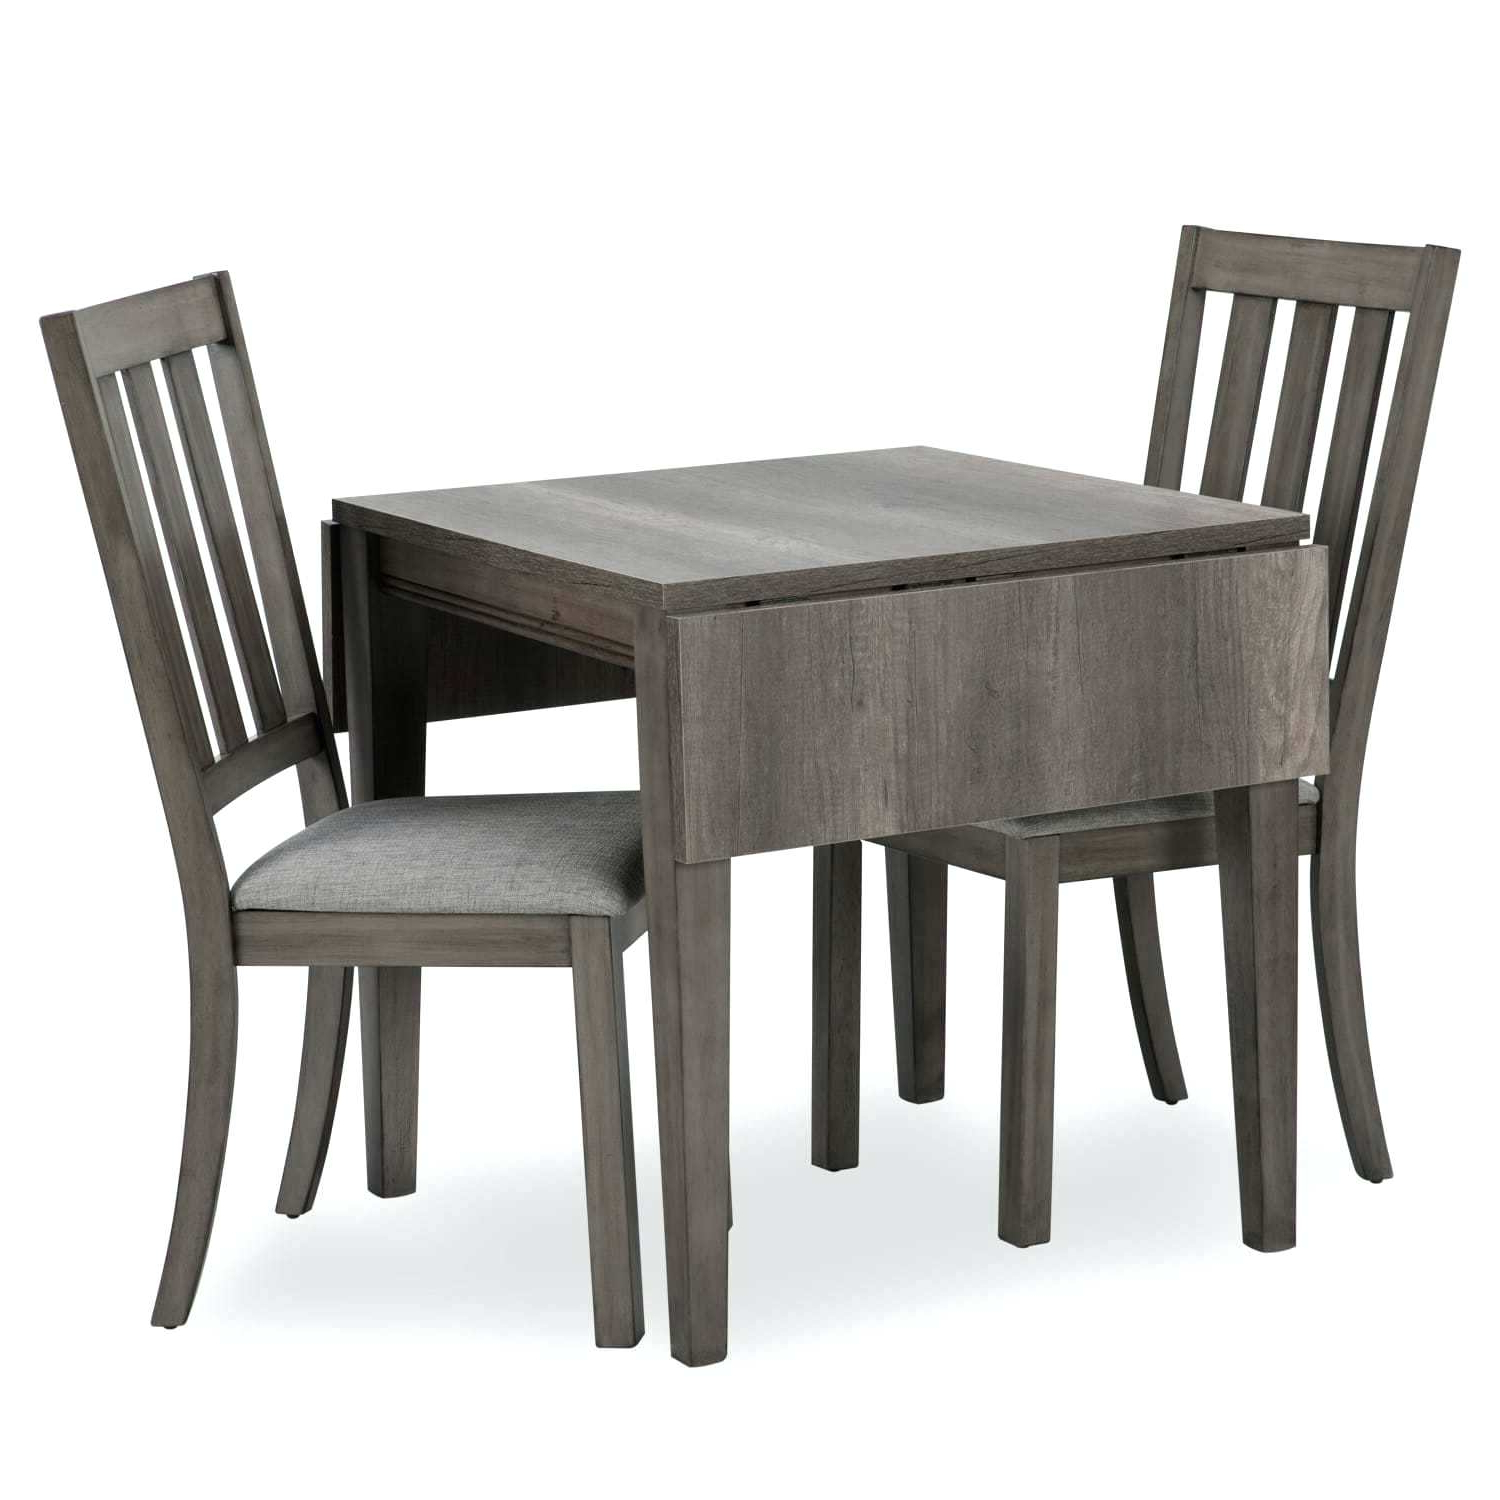 3 Pieces Dining Tables And Chair Set in Well-liked 3 Pc Dining Table Set – Sexevents.co